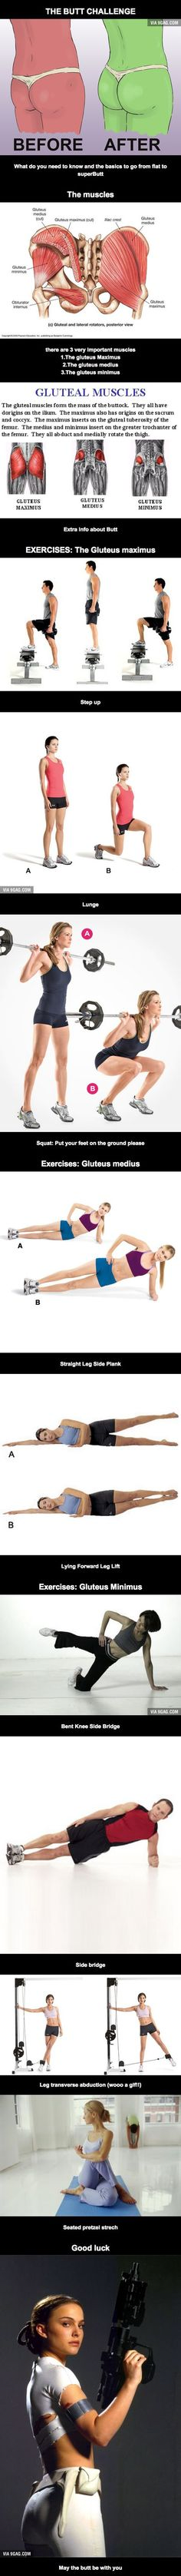 good exercises for the booty: